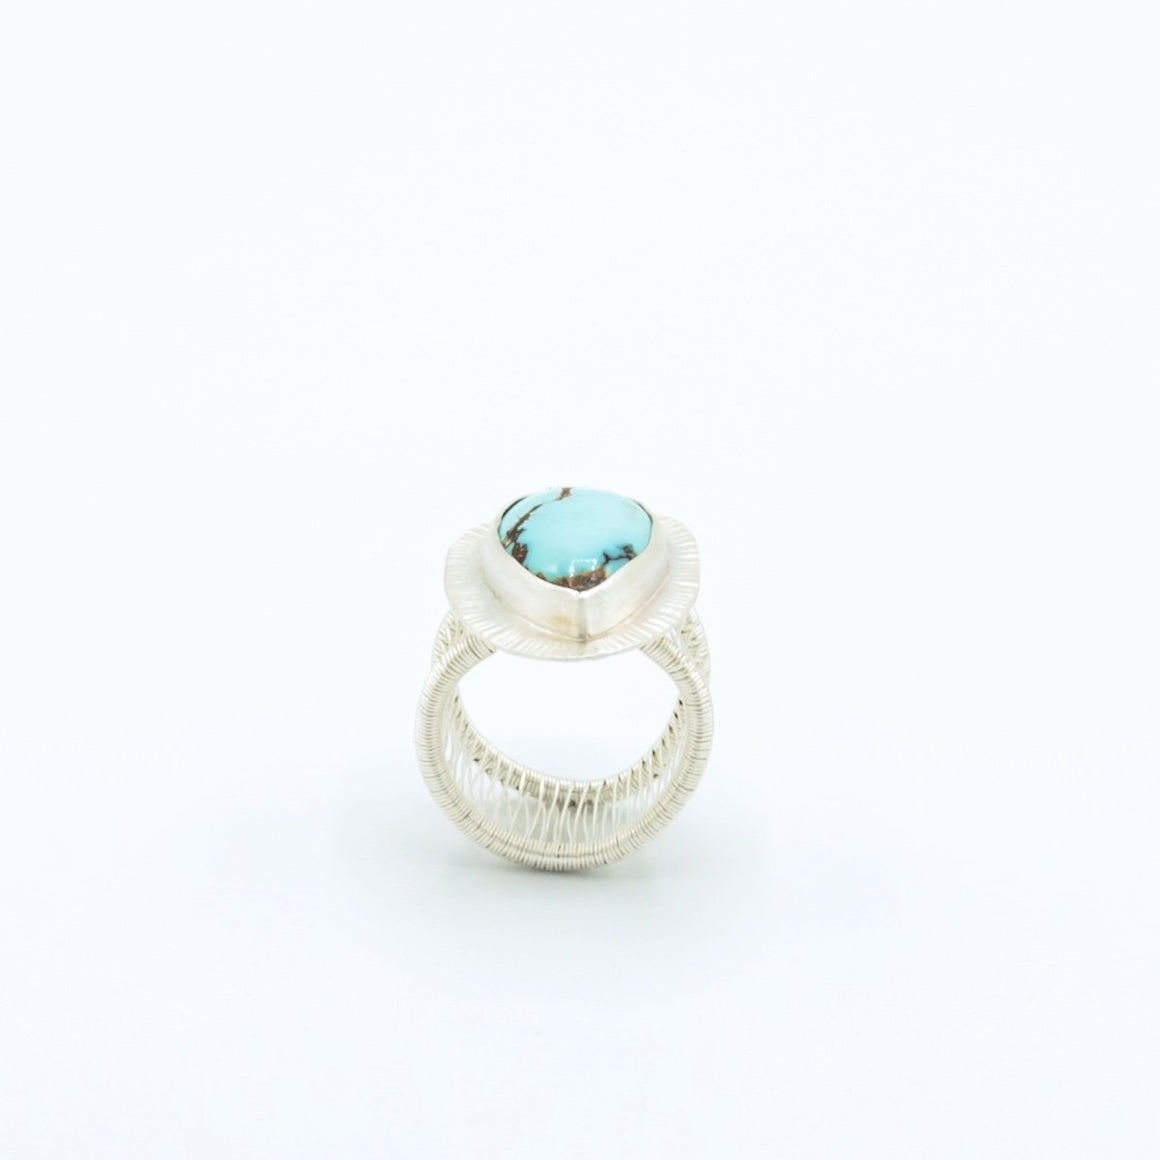 Bethanie - Royston Turquoise Woven Band Ring - Original Sin Jewelry